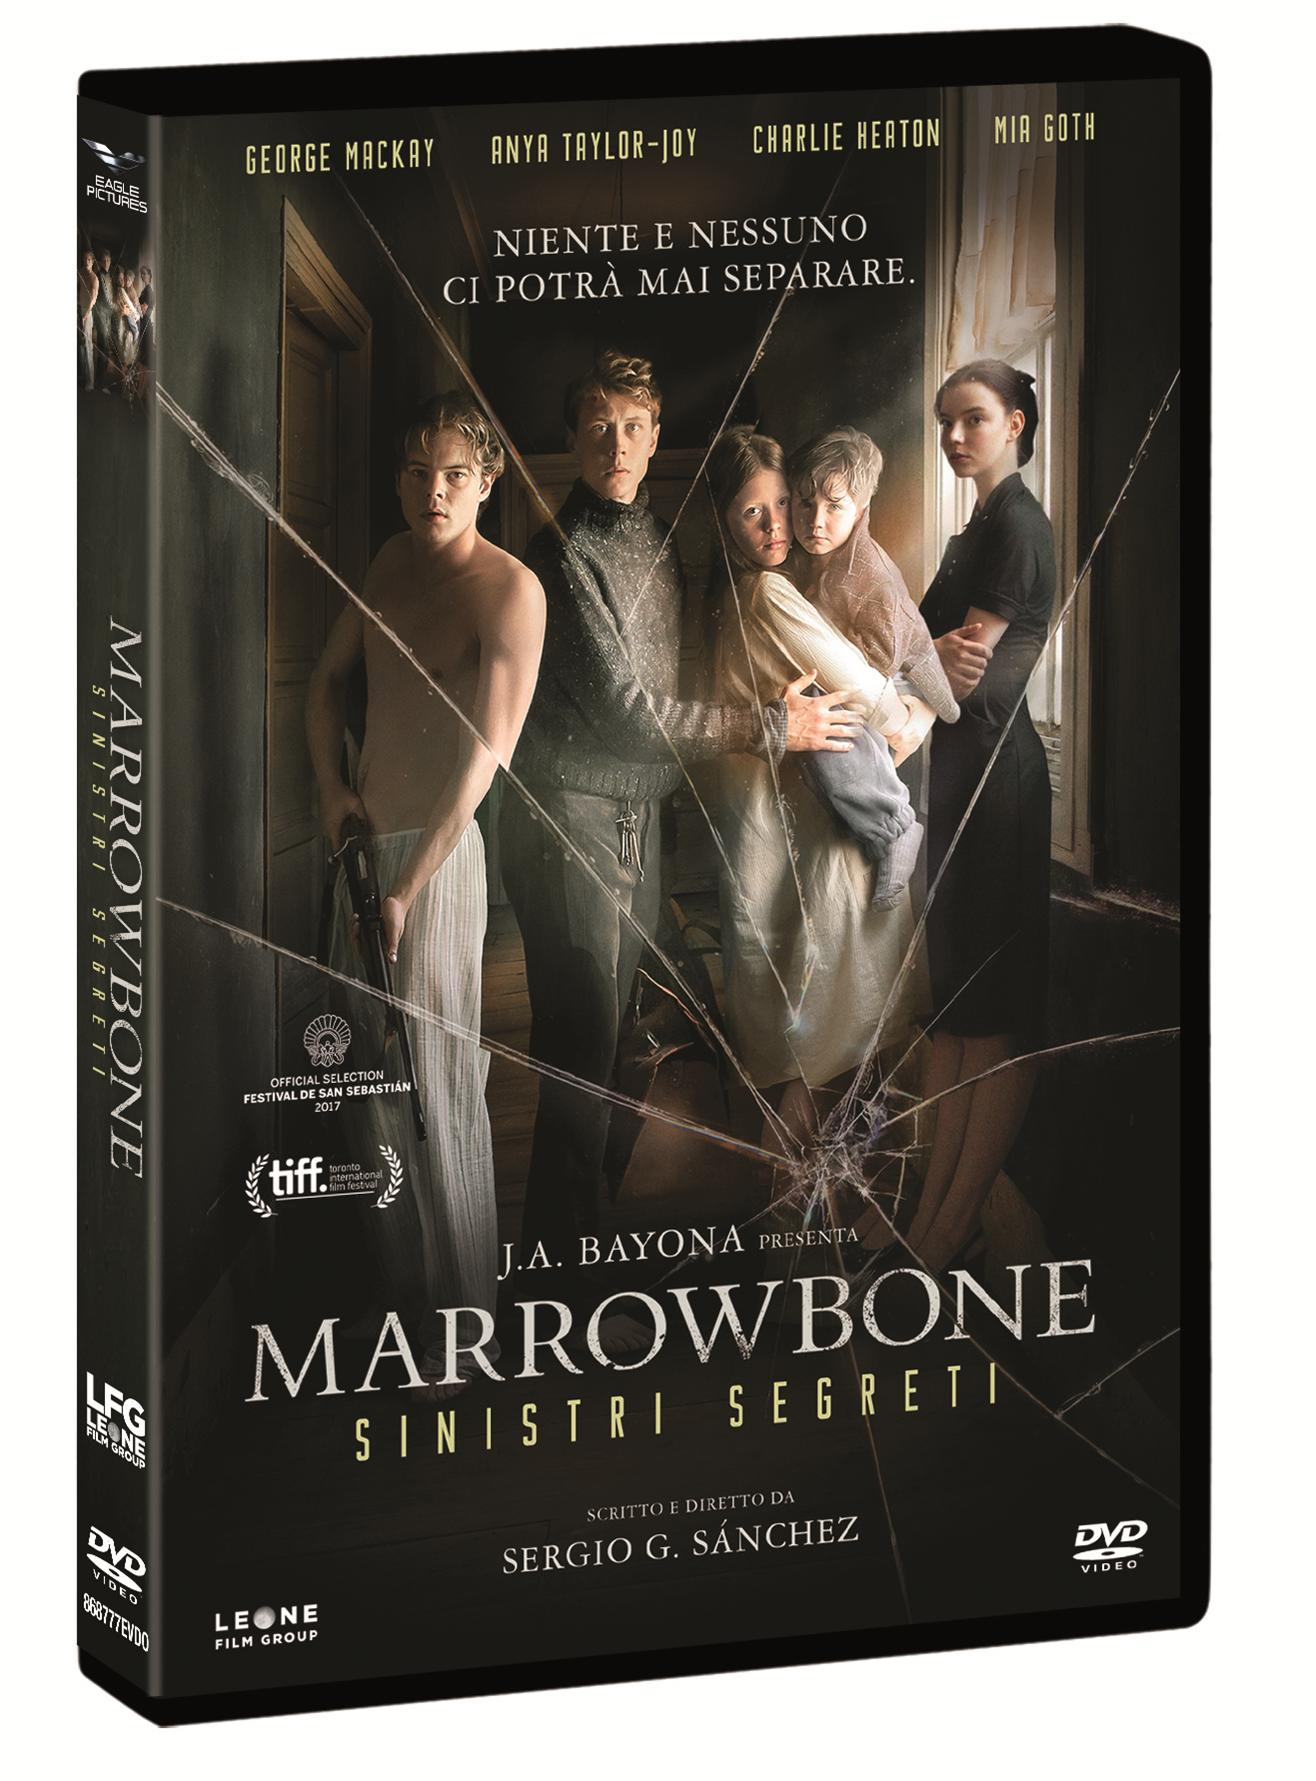 MARROWBONE - SINISTRI SEGRETI (DVD)